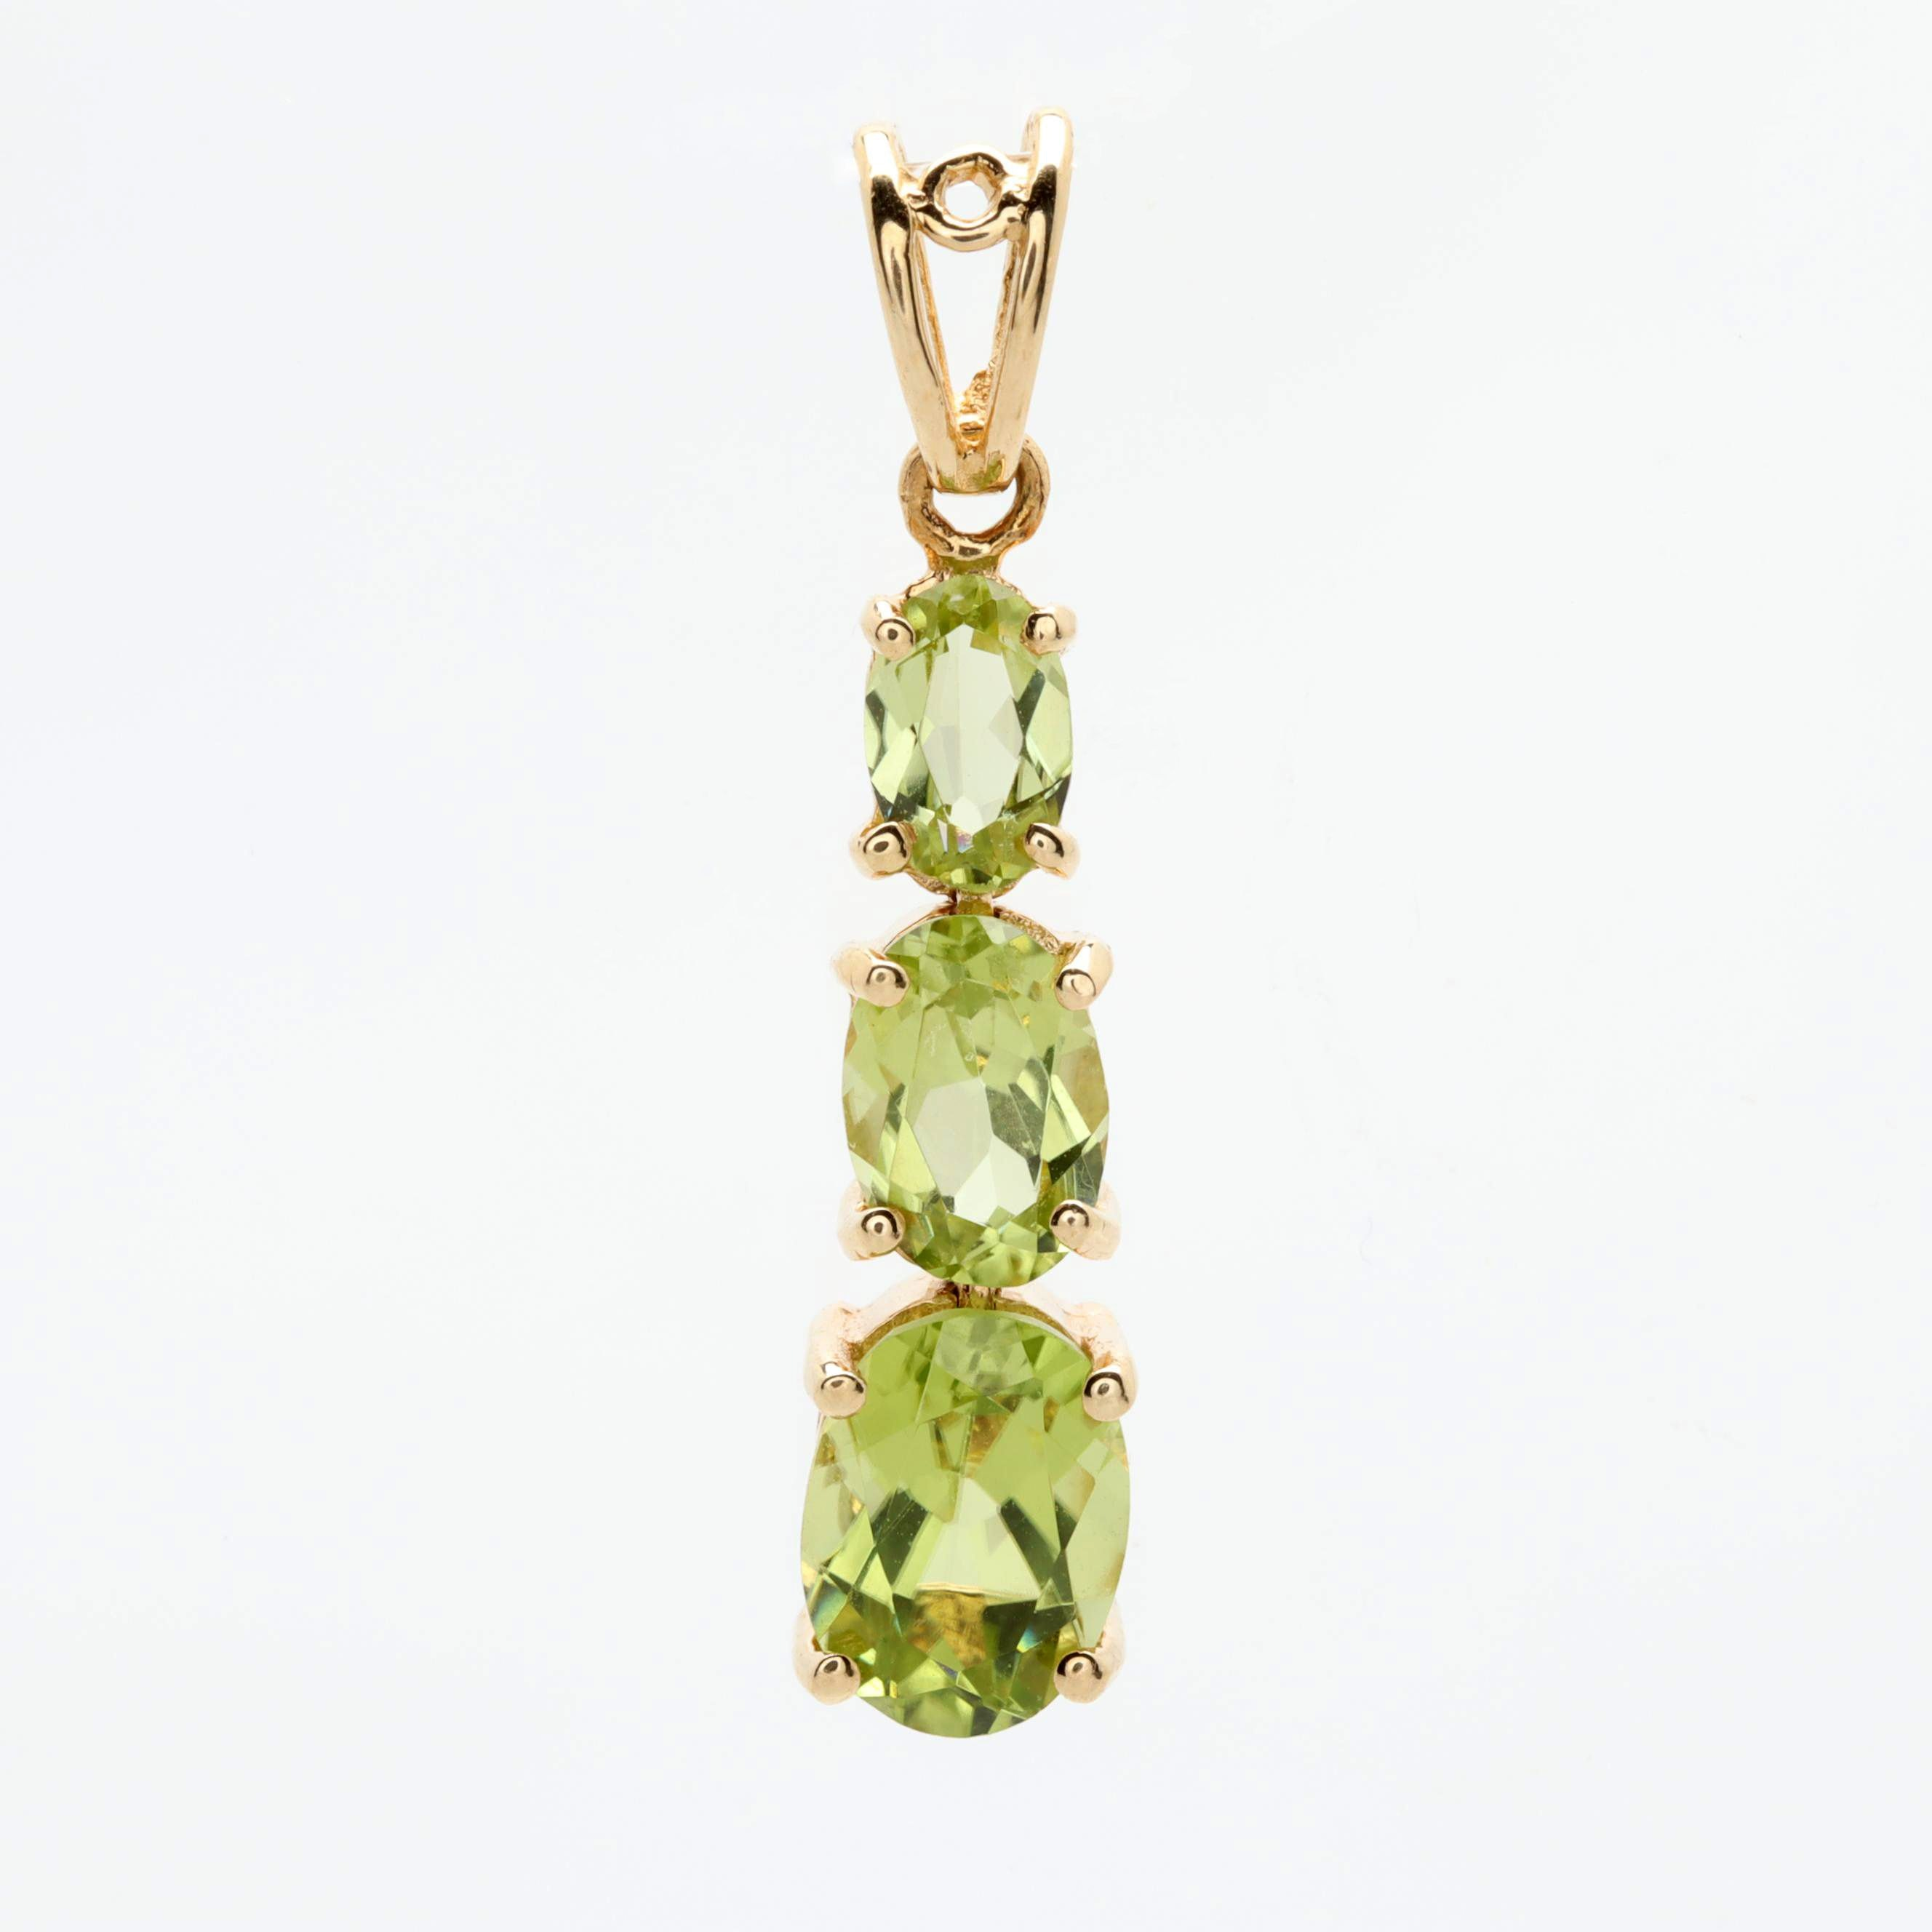 14K Yellow Gold Peridot Pendant